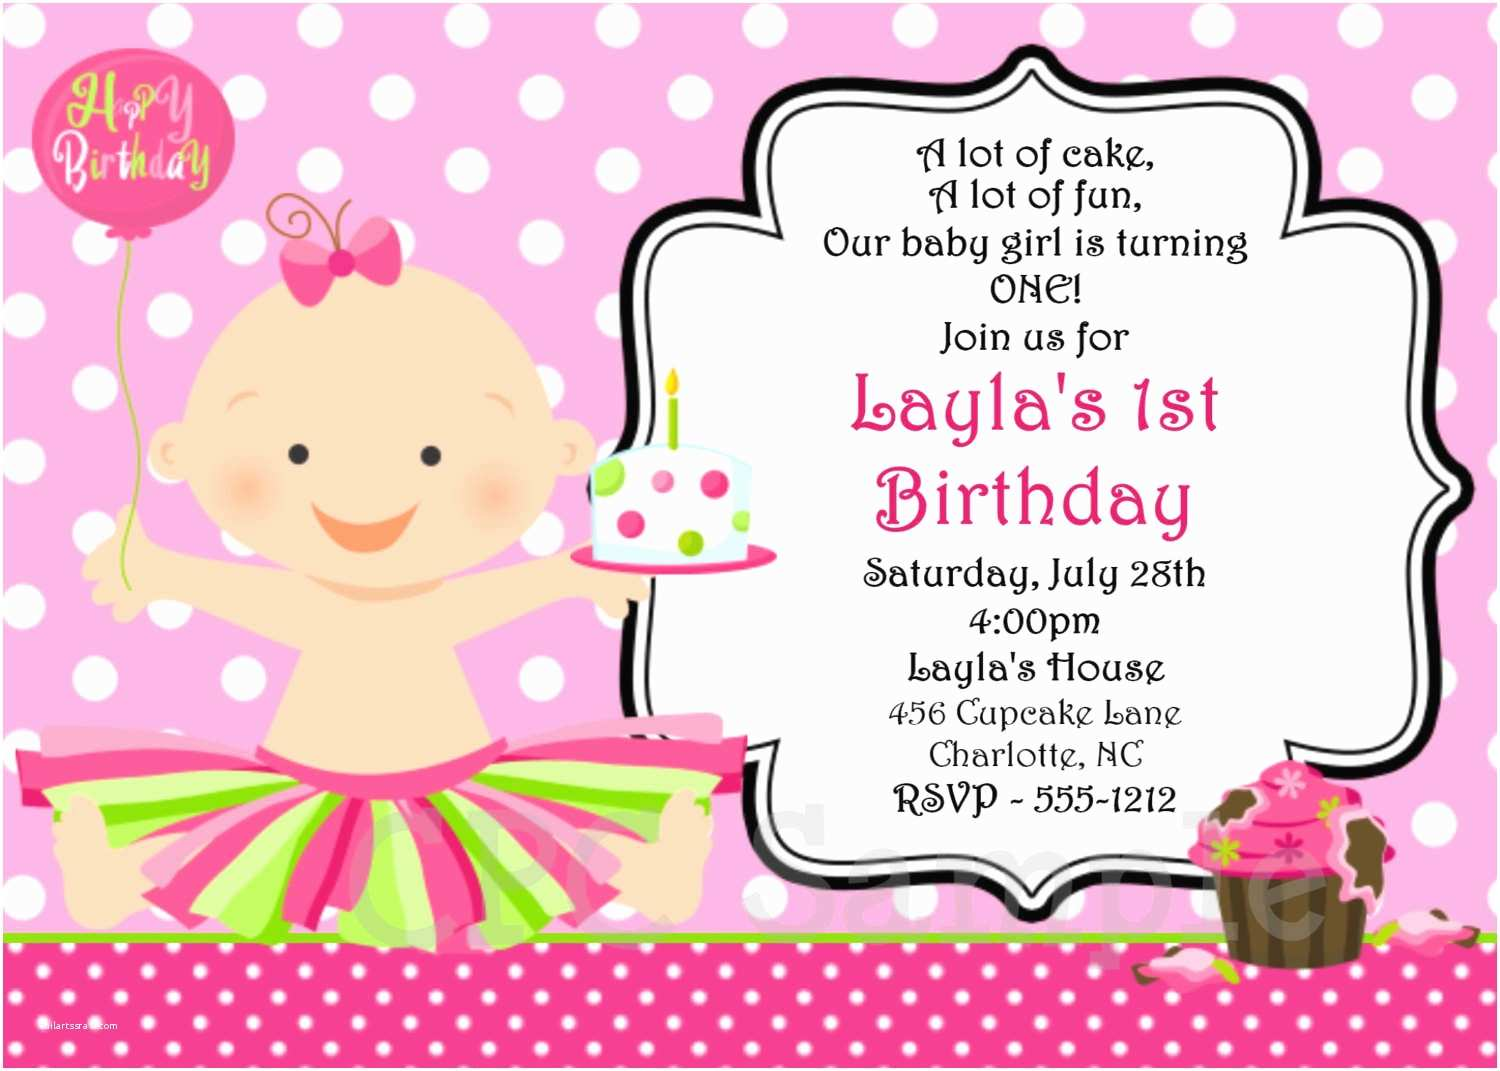 Cool Party Invitations Cool Birthday Invitations Template